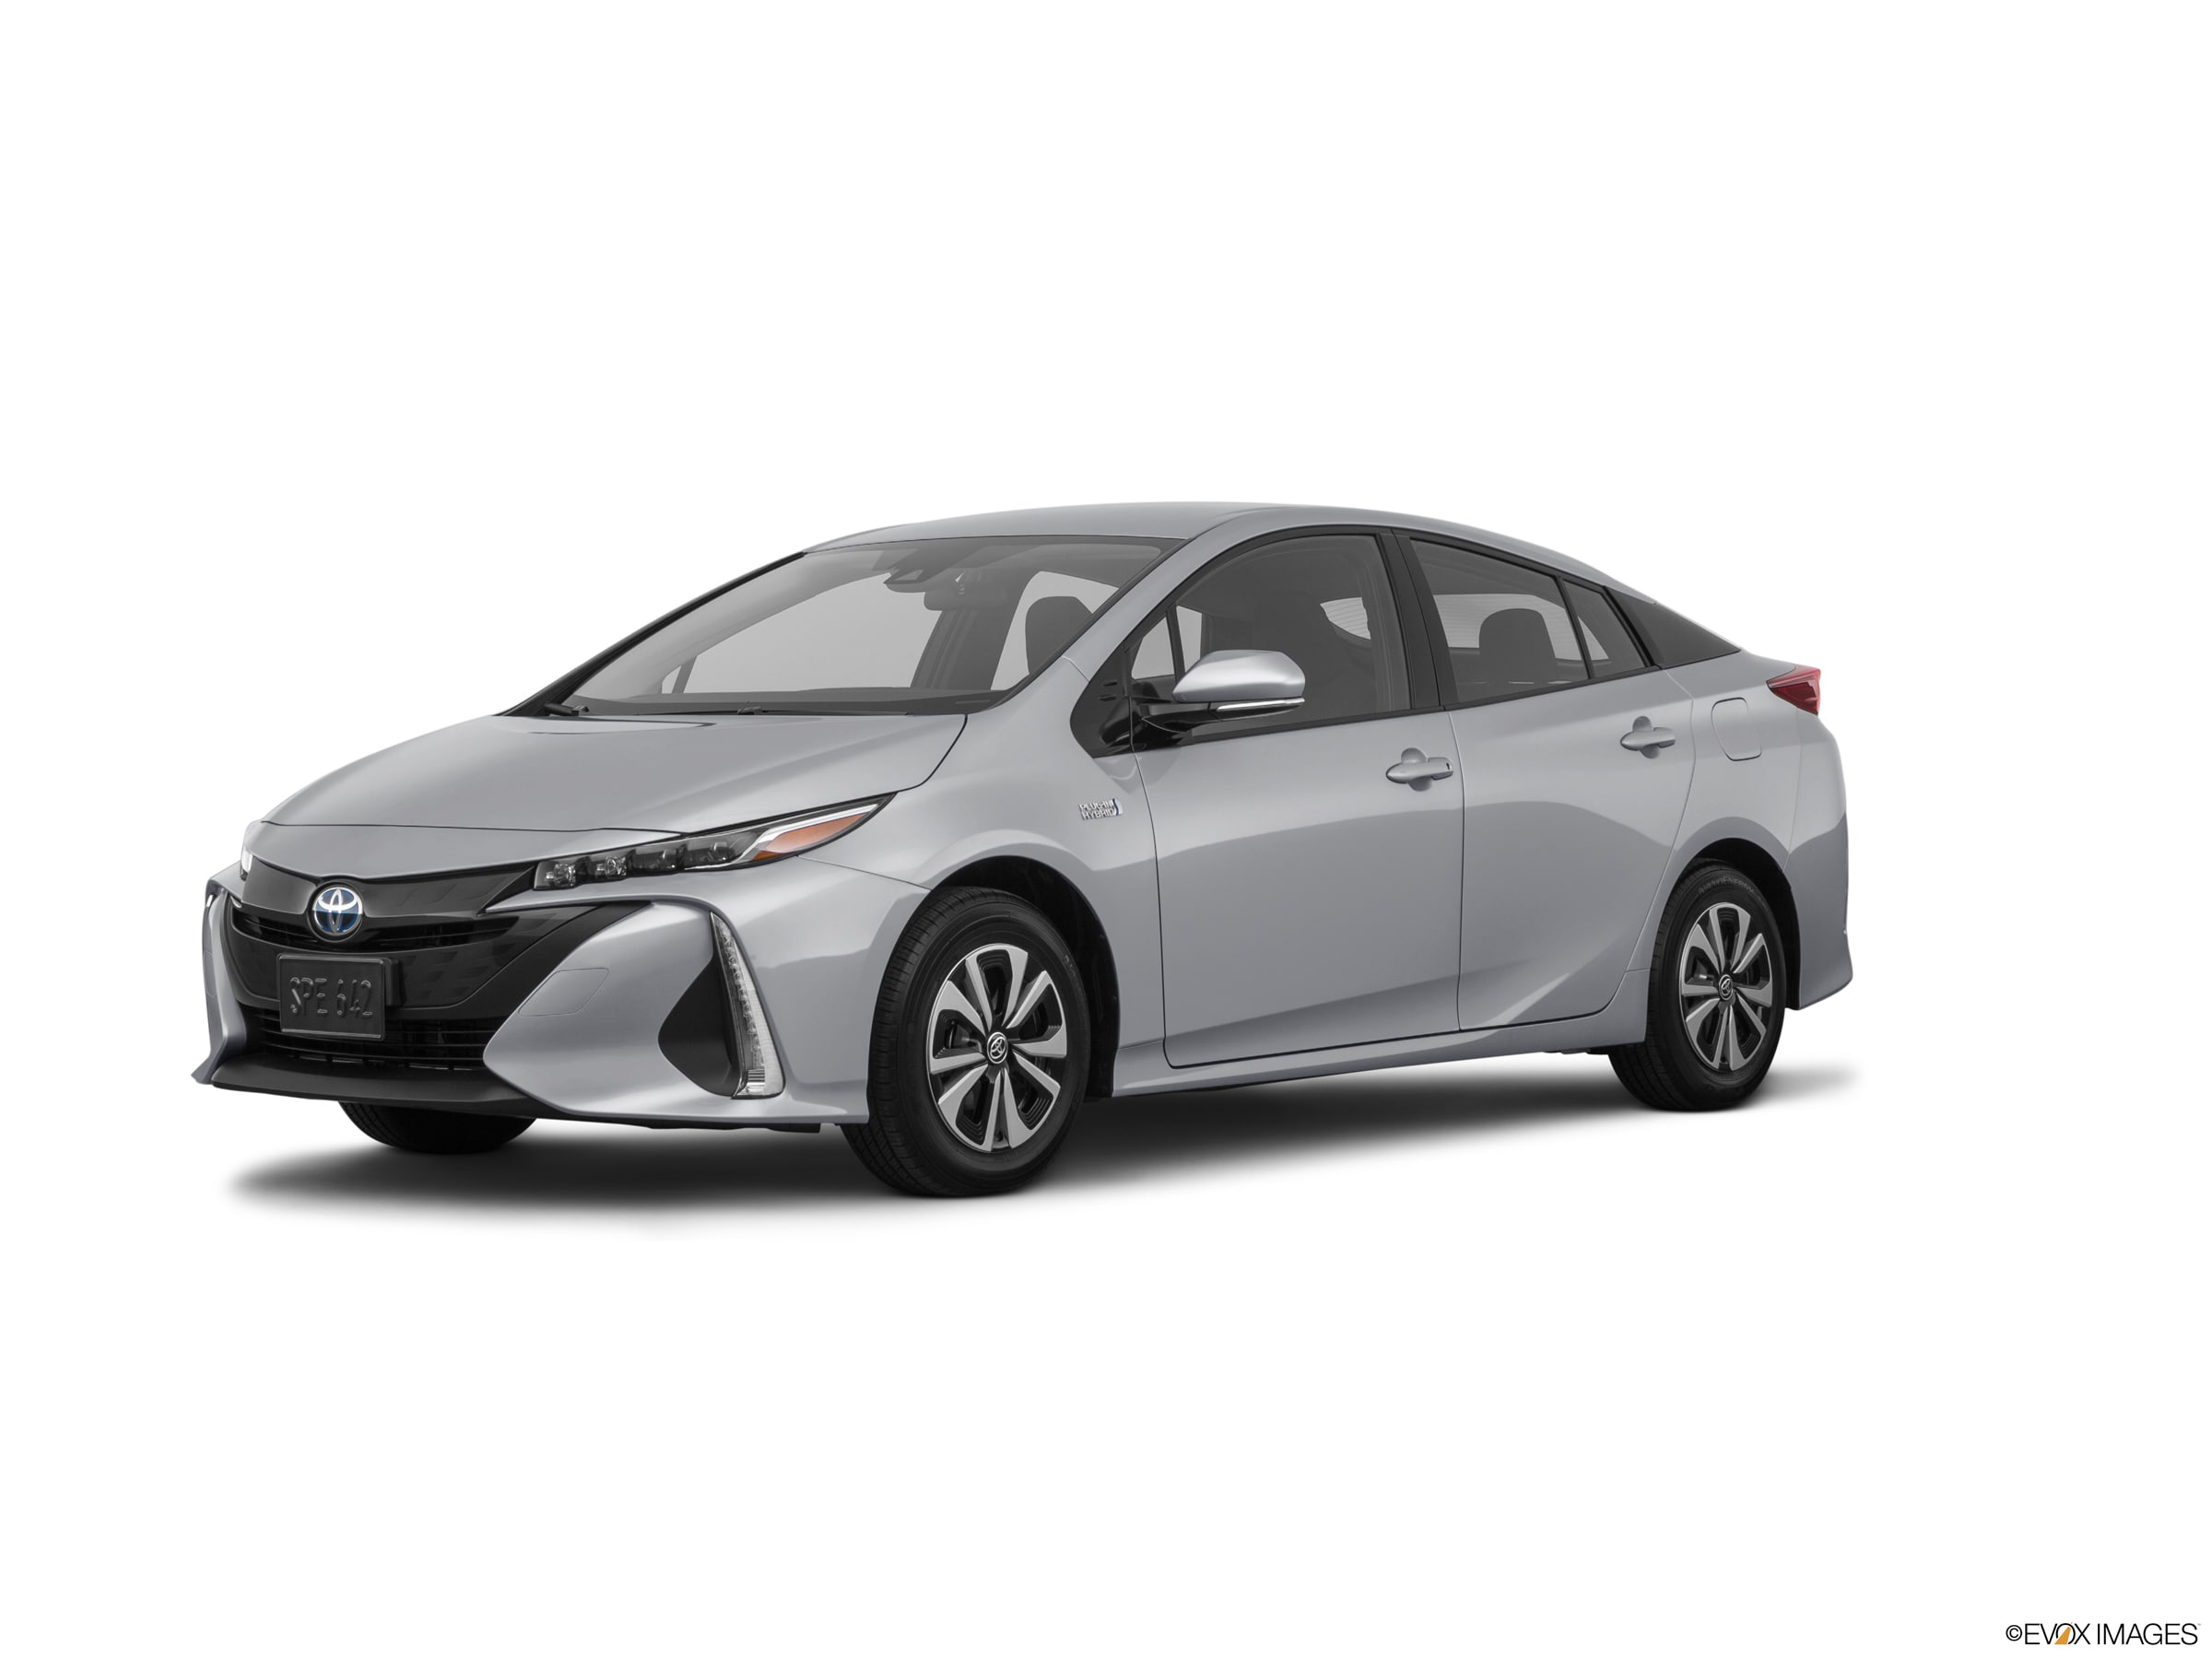 Certified 2018 Toyota Prius Prime Advanced with VIN JTDKARFP4J3091563 for sale in Maplewood, Minnesota